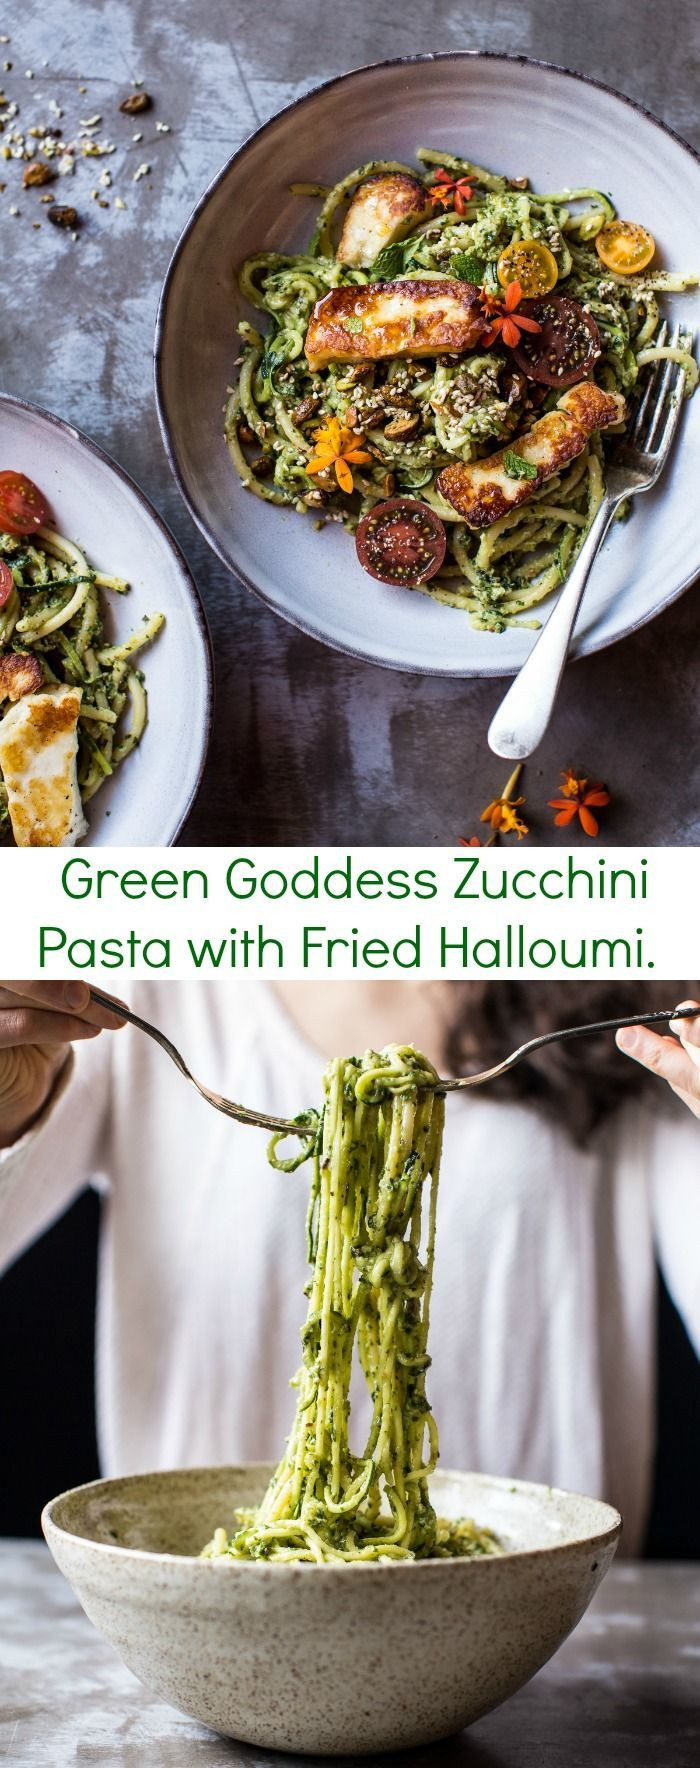 "Green Goddess Zucchini Pasta with Fried Halloumi | <a href="""" rel=""nofollow"" target=""_blank""></a> <a href=""/hbharvest/"" title=""Half Baked Harvest"">@Half Baked Harvest</a>"